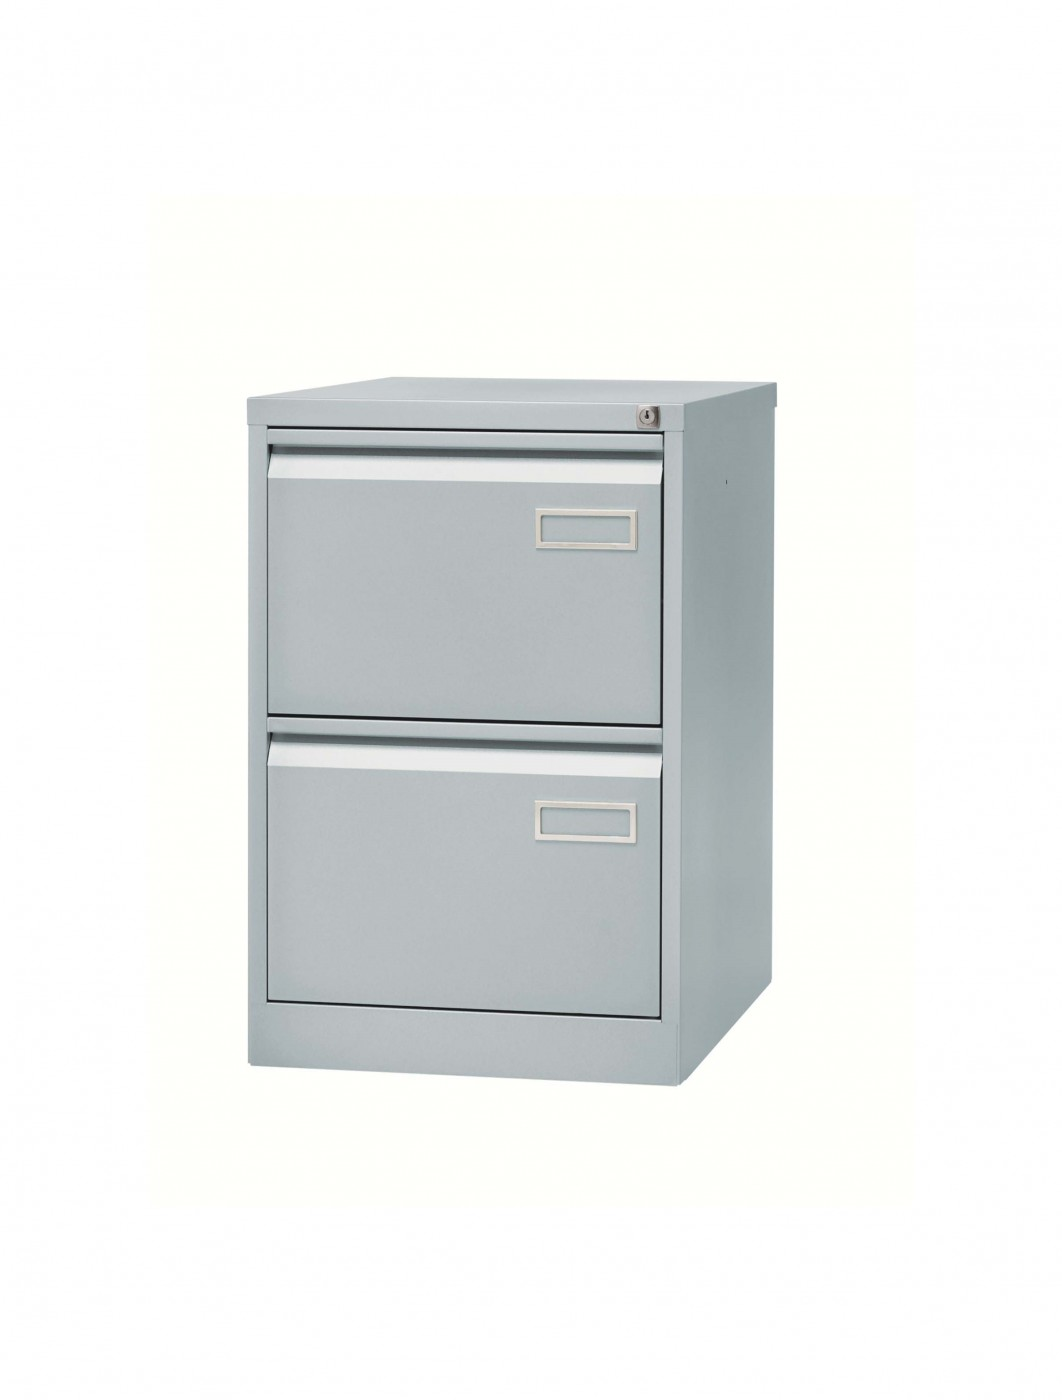 bisley 2 drawer contract filing cabinet bpsf2 enlarged view